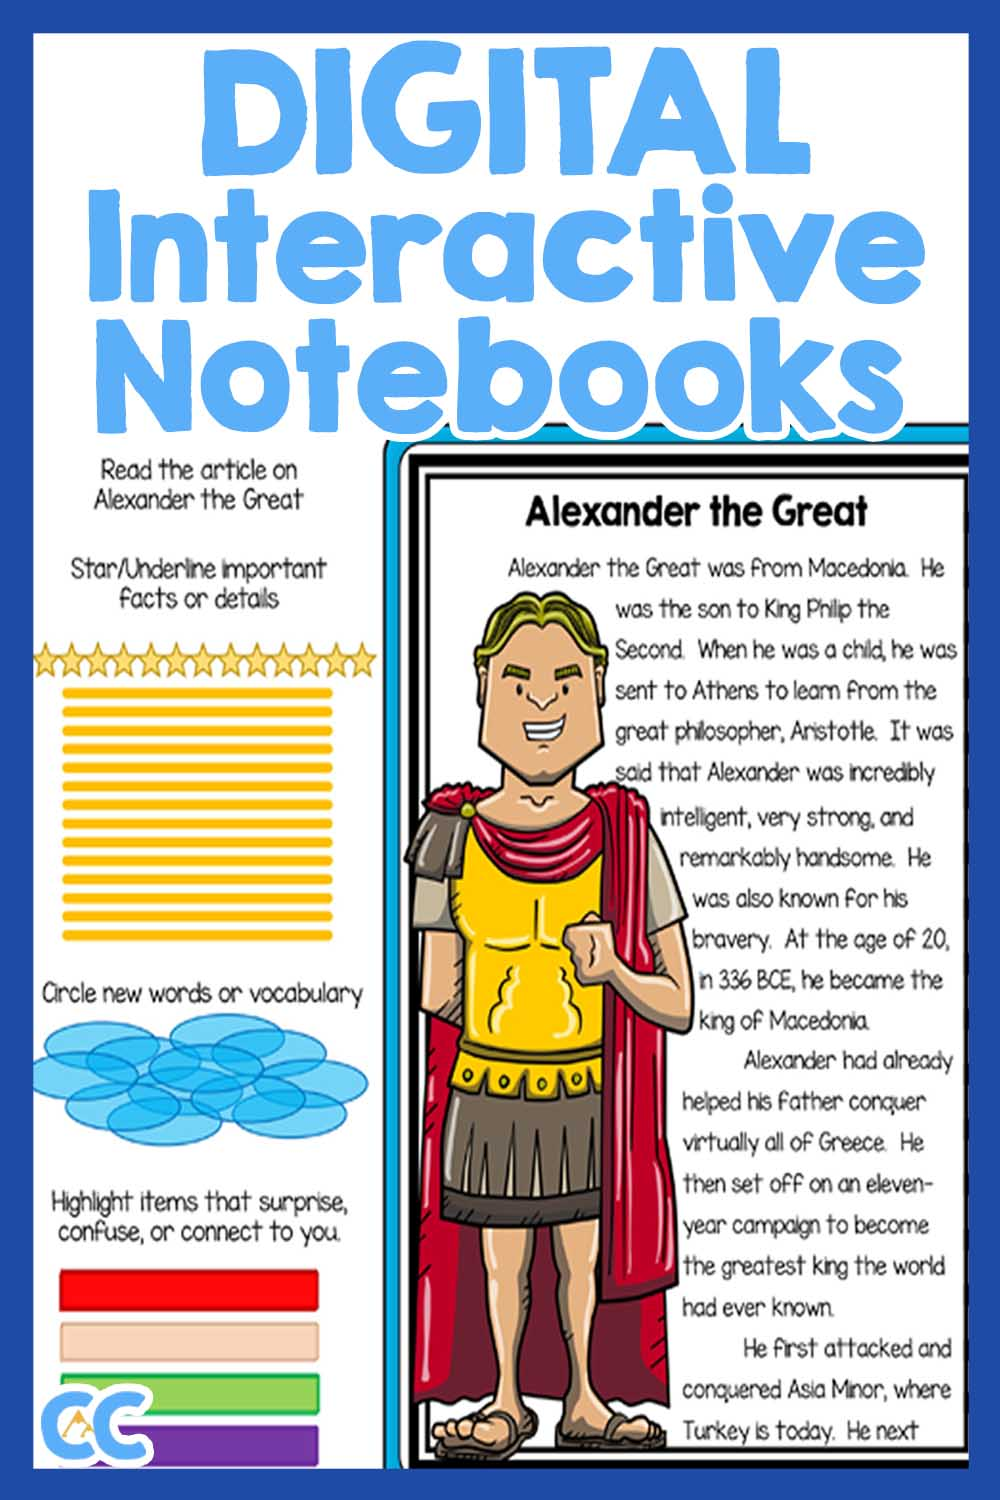 Digital Interactive Notebooks features a page from Alexander the Great with a reading and annotation tools in bright and bold colors.